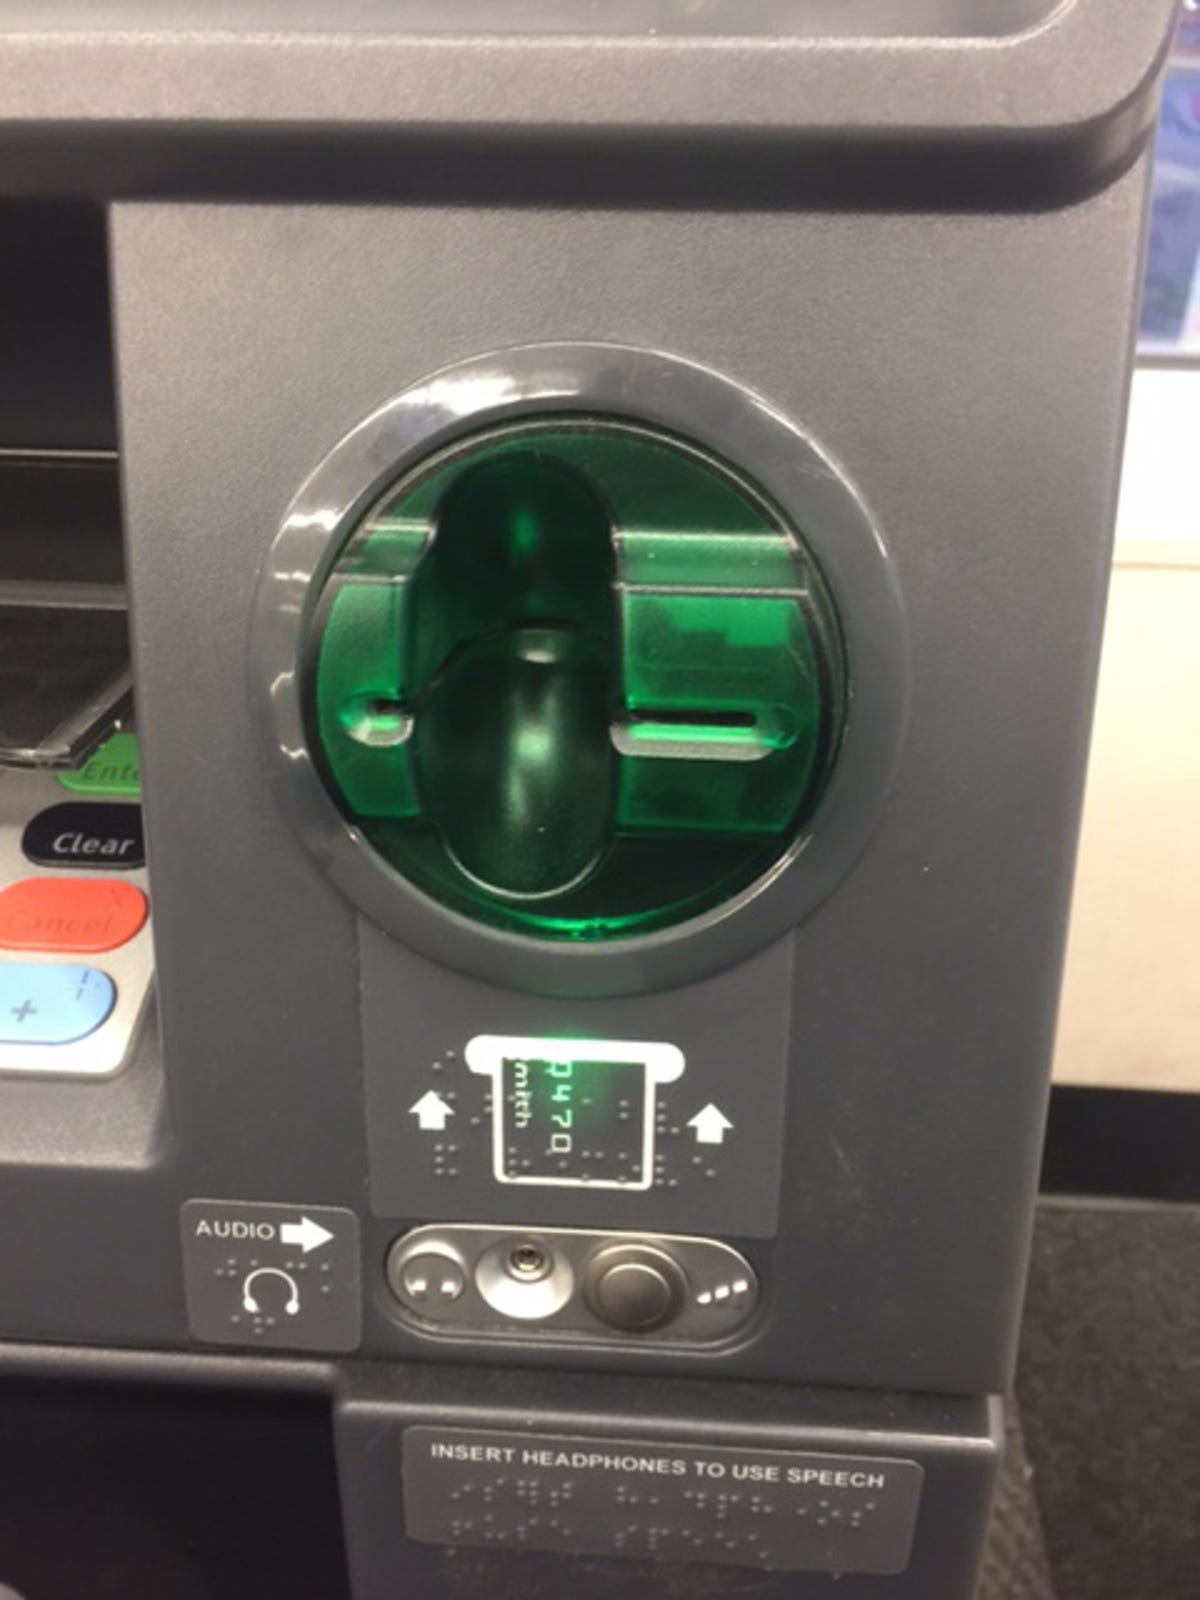 Legislation introduced to increase penalties for card-skimming